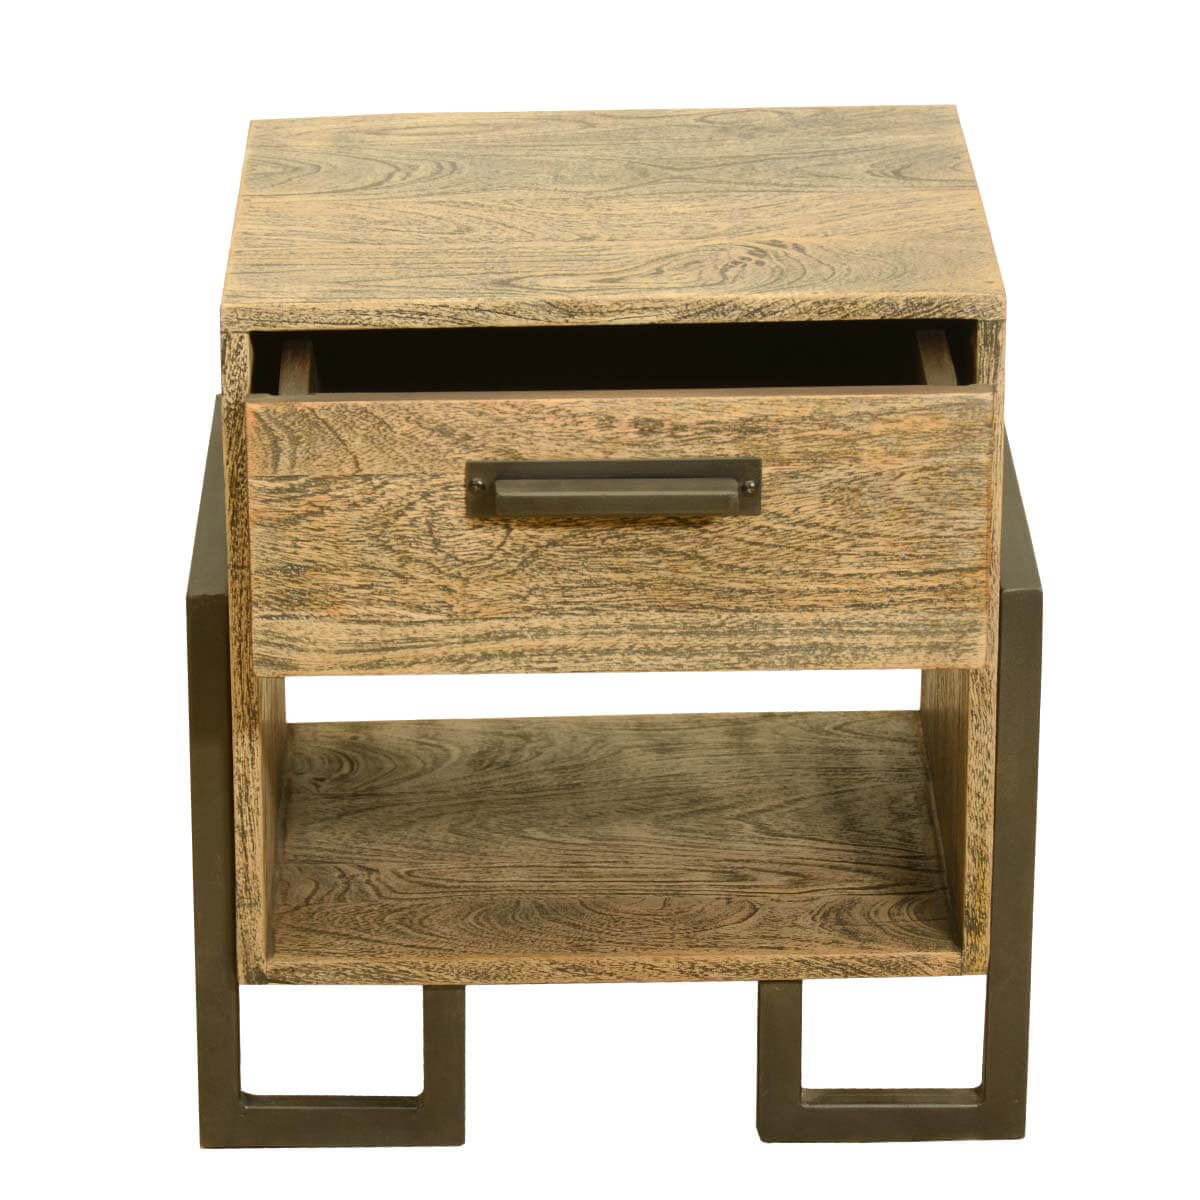 Industrial Style Solid Wood Square Storage Trunk 5 Drawer: Industrial Style Rustic Solid Wood & Iron Bedside End